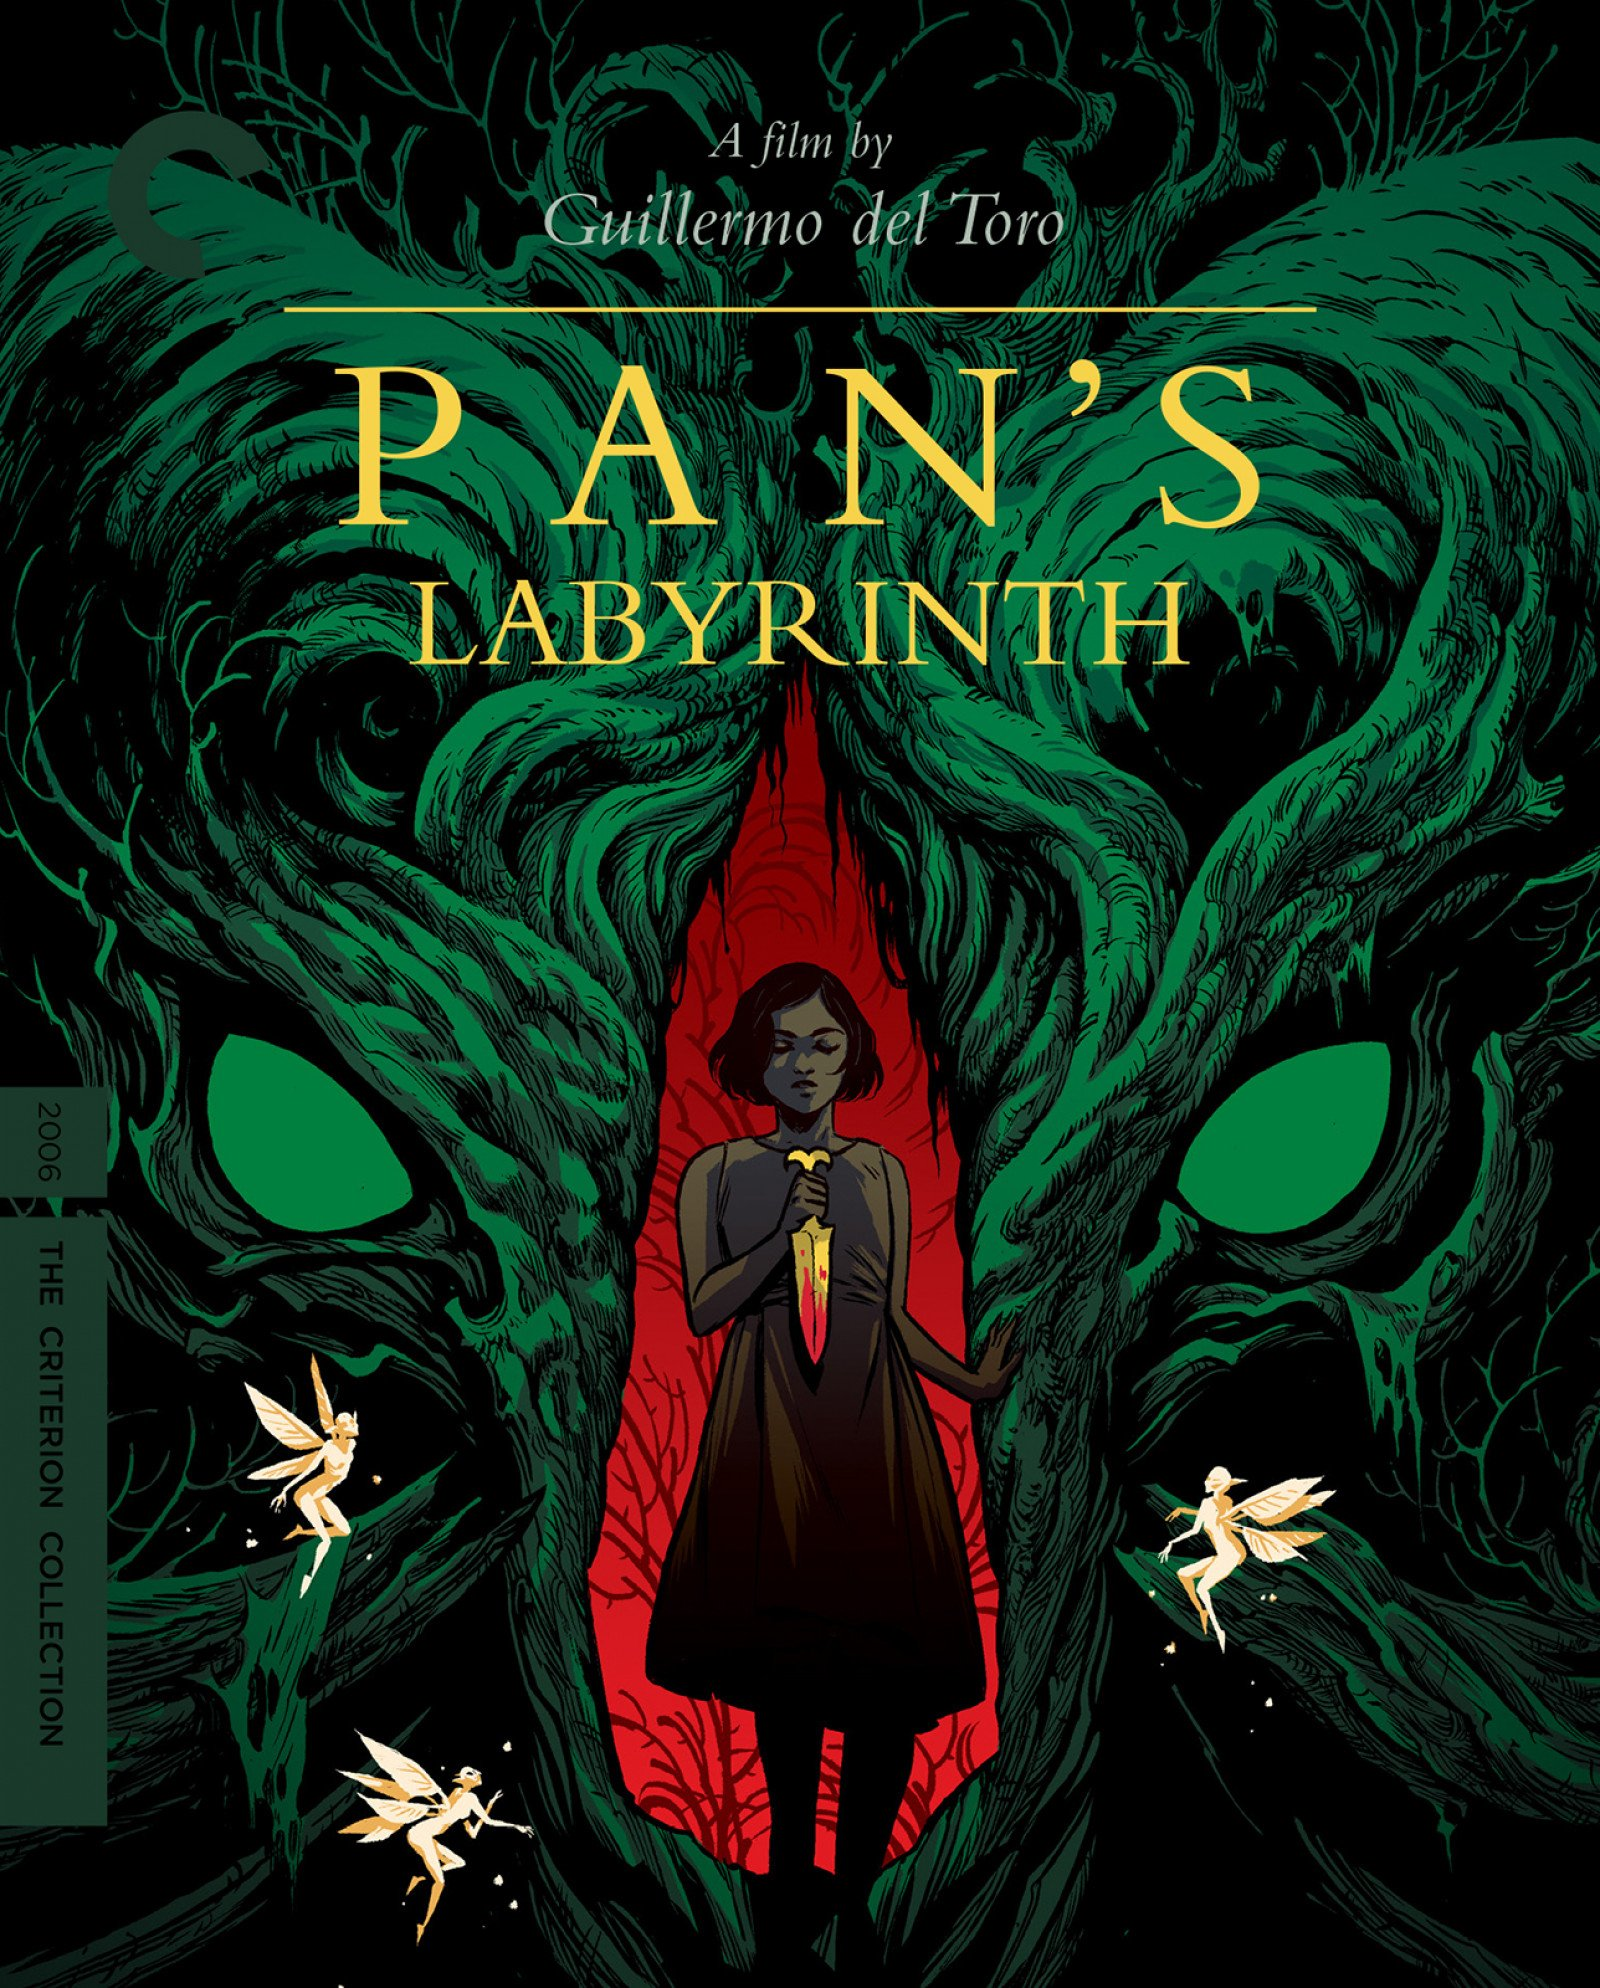 An Erotic Werewolf In London 2006 review: guillermo del toro's pan's labyrinth on criterion